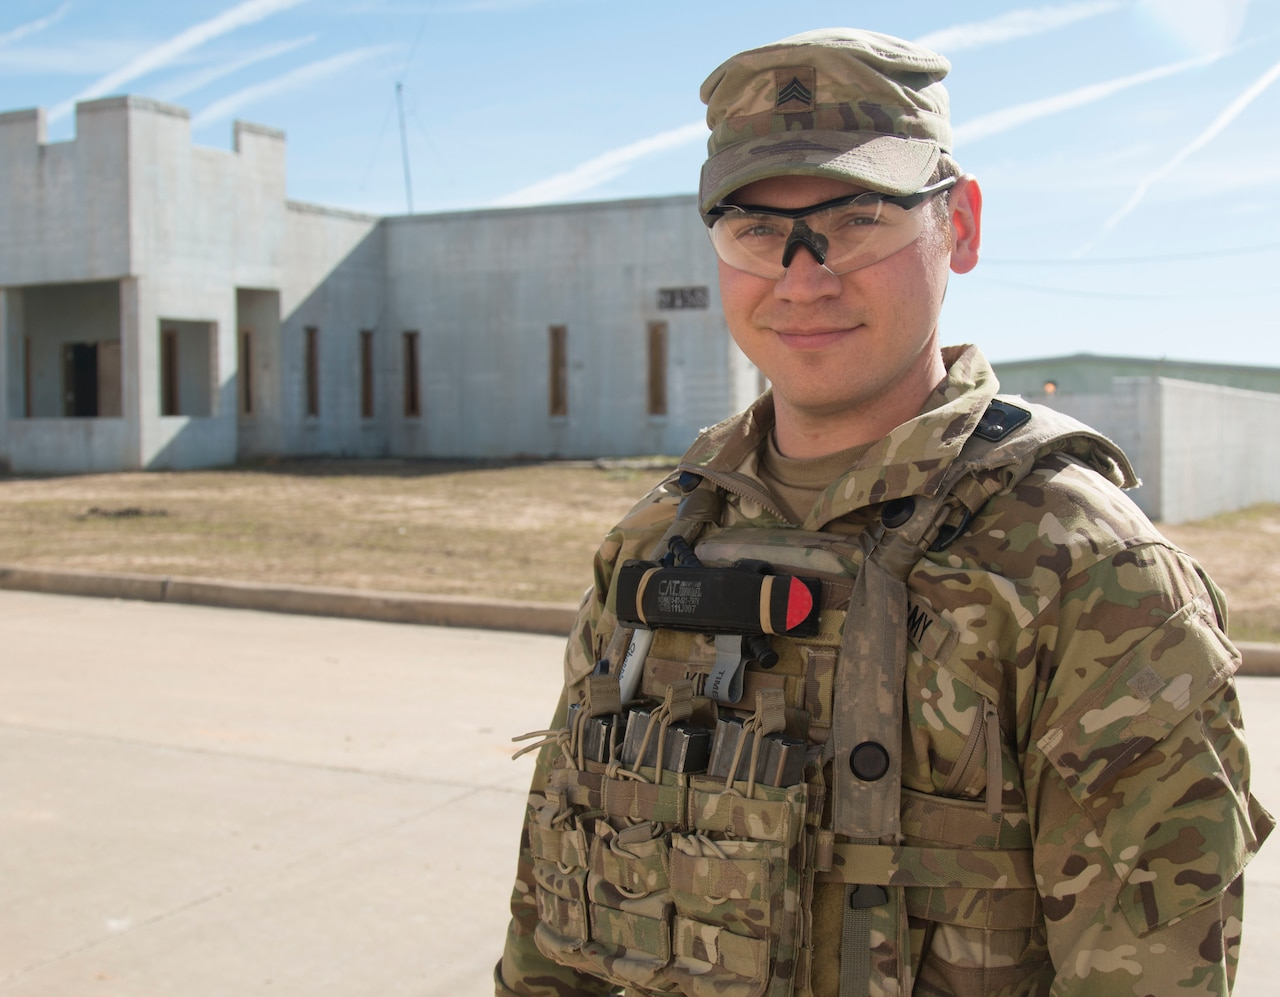 Army Sgt. Randy Kieso, a combat medic with 3rd Battalion, 1st Security Force Assistance Brigade based at Fort Benning, Ga., will deploy for the first time in his Army career with the brigade on its first-ever deployment to Afghanistan in the spring of 2018 following a month-long rotation at the Joint Readiness Center at Fort Polk, La. SFABs are a permanent, additive force structure that is being developed and deployed as a solution to an enduring Army requirement in support of the defense strategy. Army photo by Spc. Noelle E. Wiehe